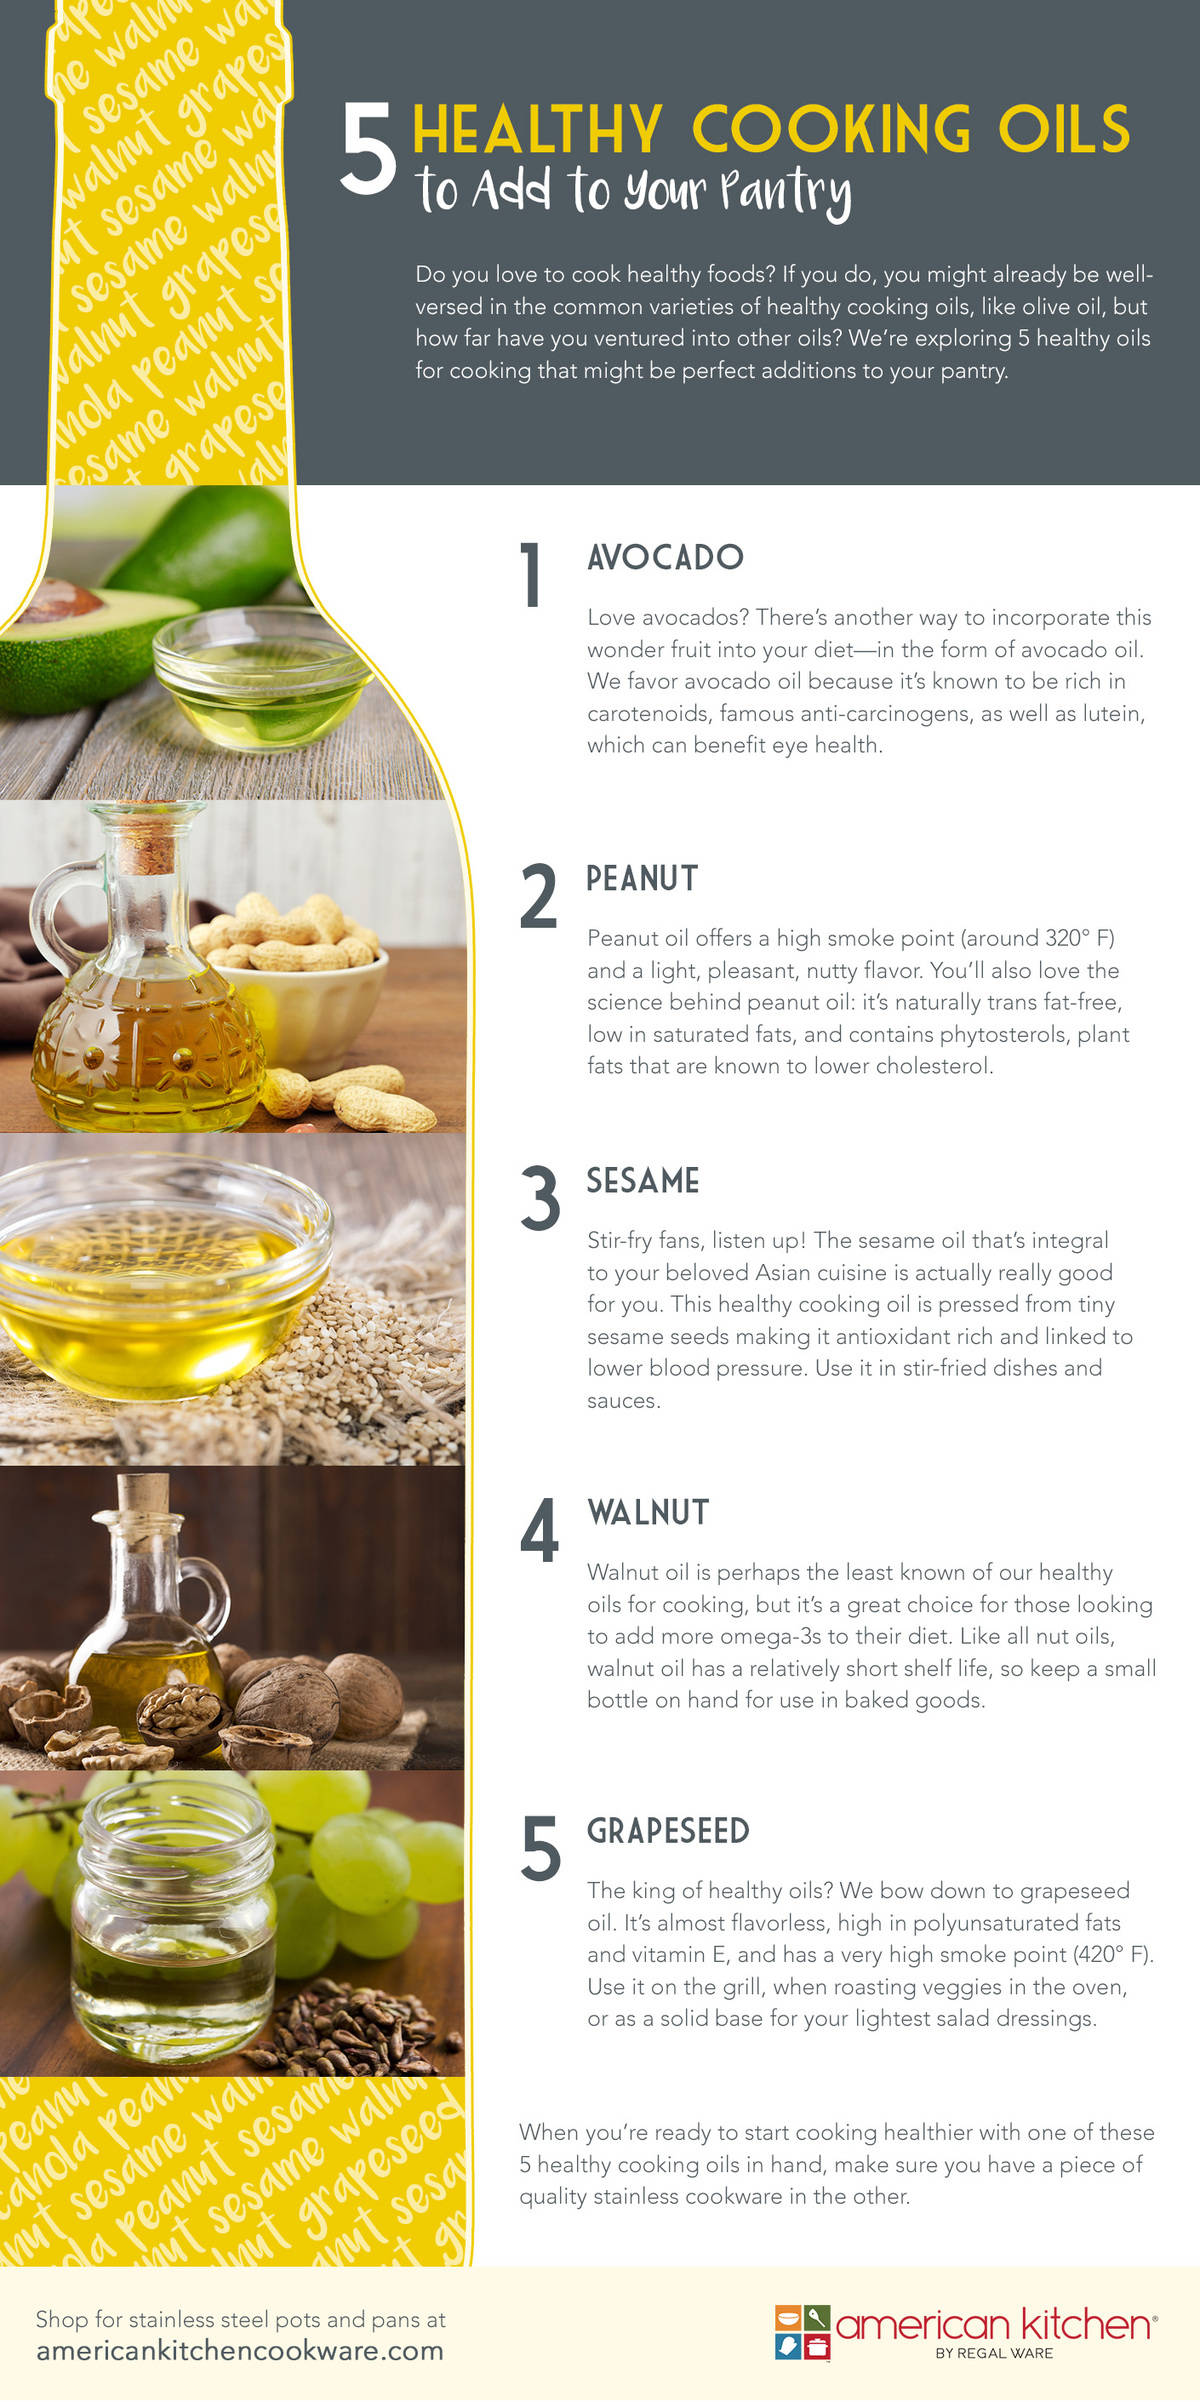 5 Healthy Cooking Oils to Add to Your Pantry